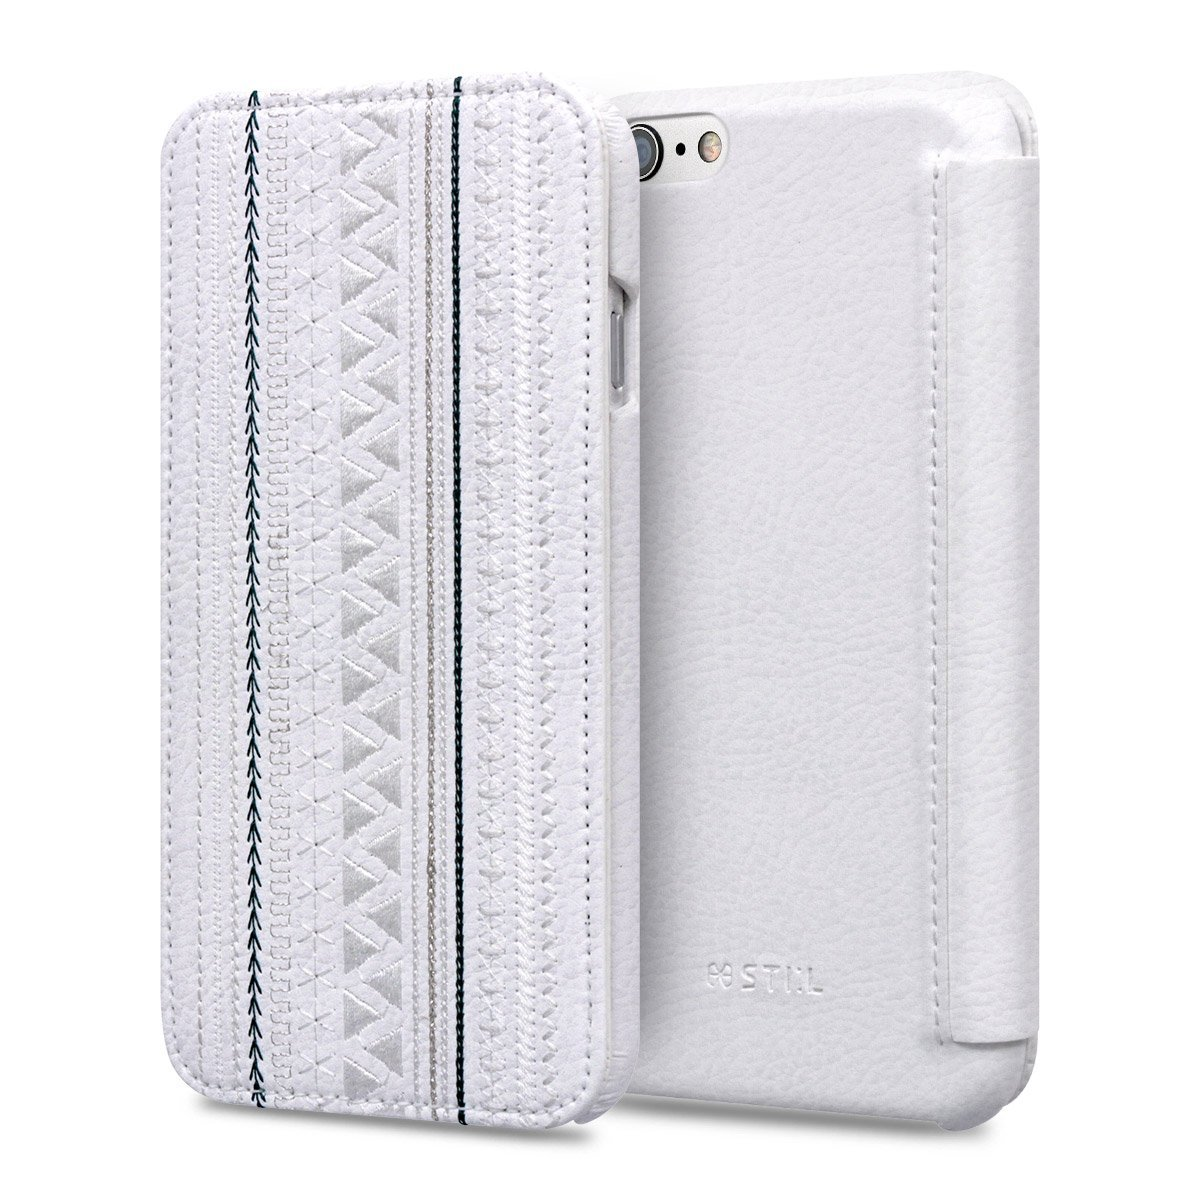 Pouzdro / kryt pro Apple iPhone 6 / 6S - STILMIND, BOHEMIAN CHIC WHITE